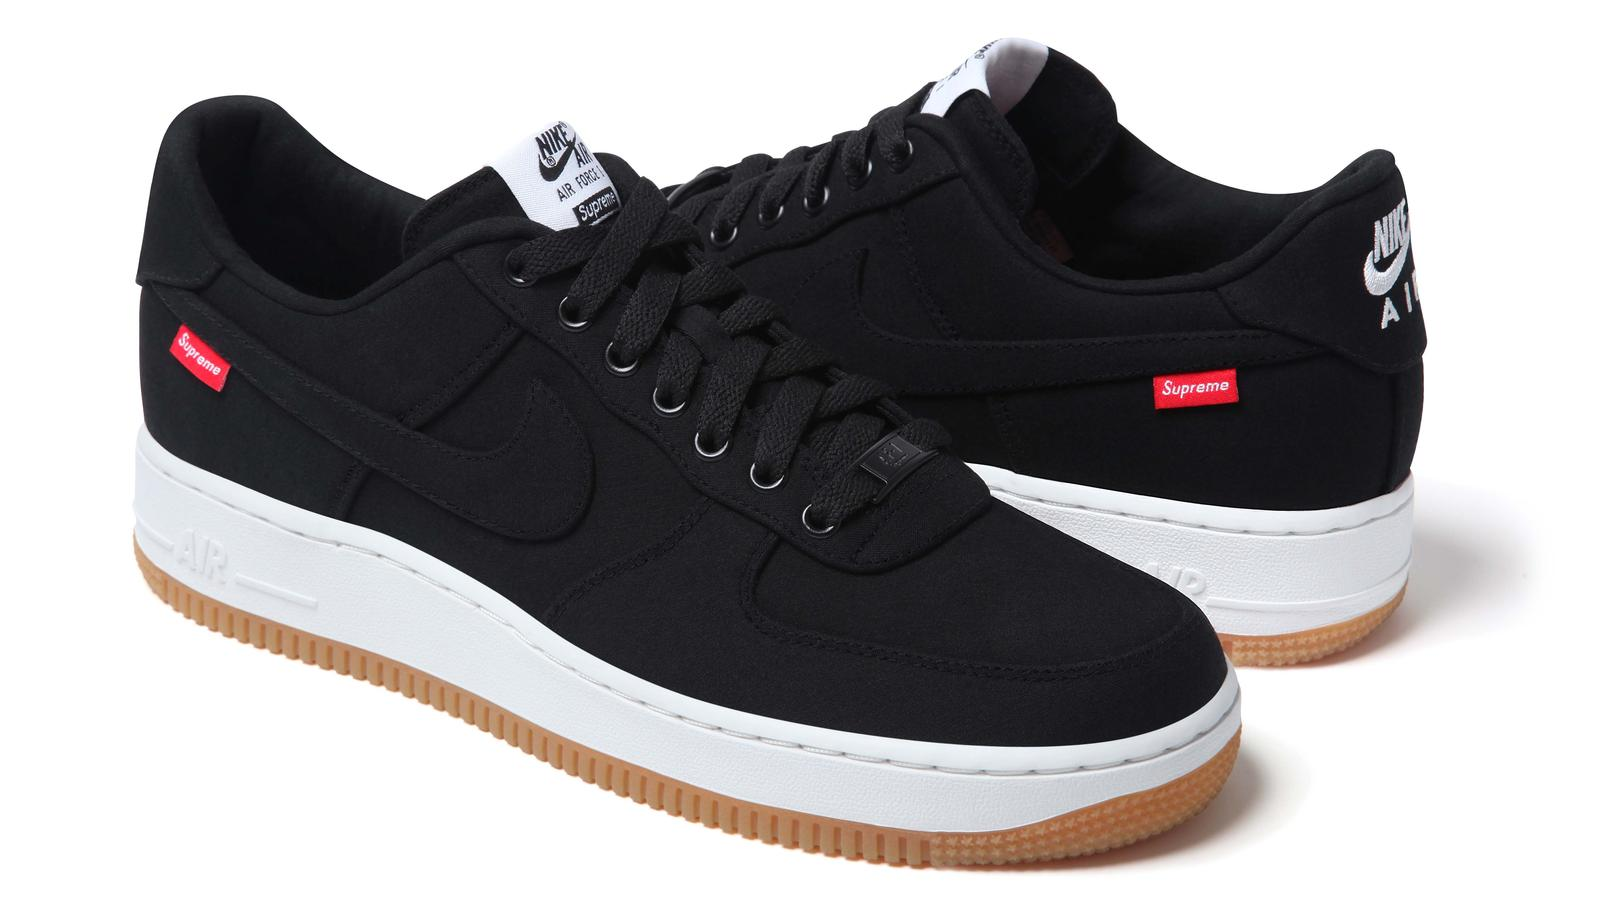 Nike_Air_Force_1_Supreme_Black_Colorway